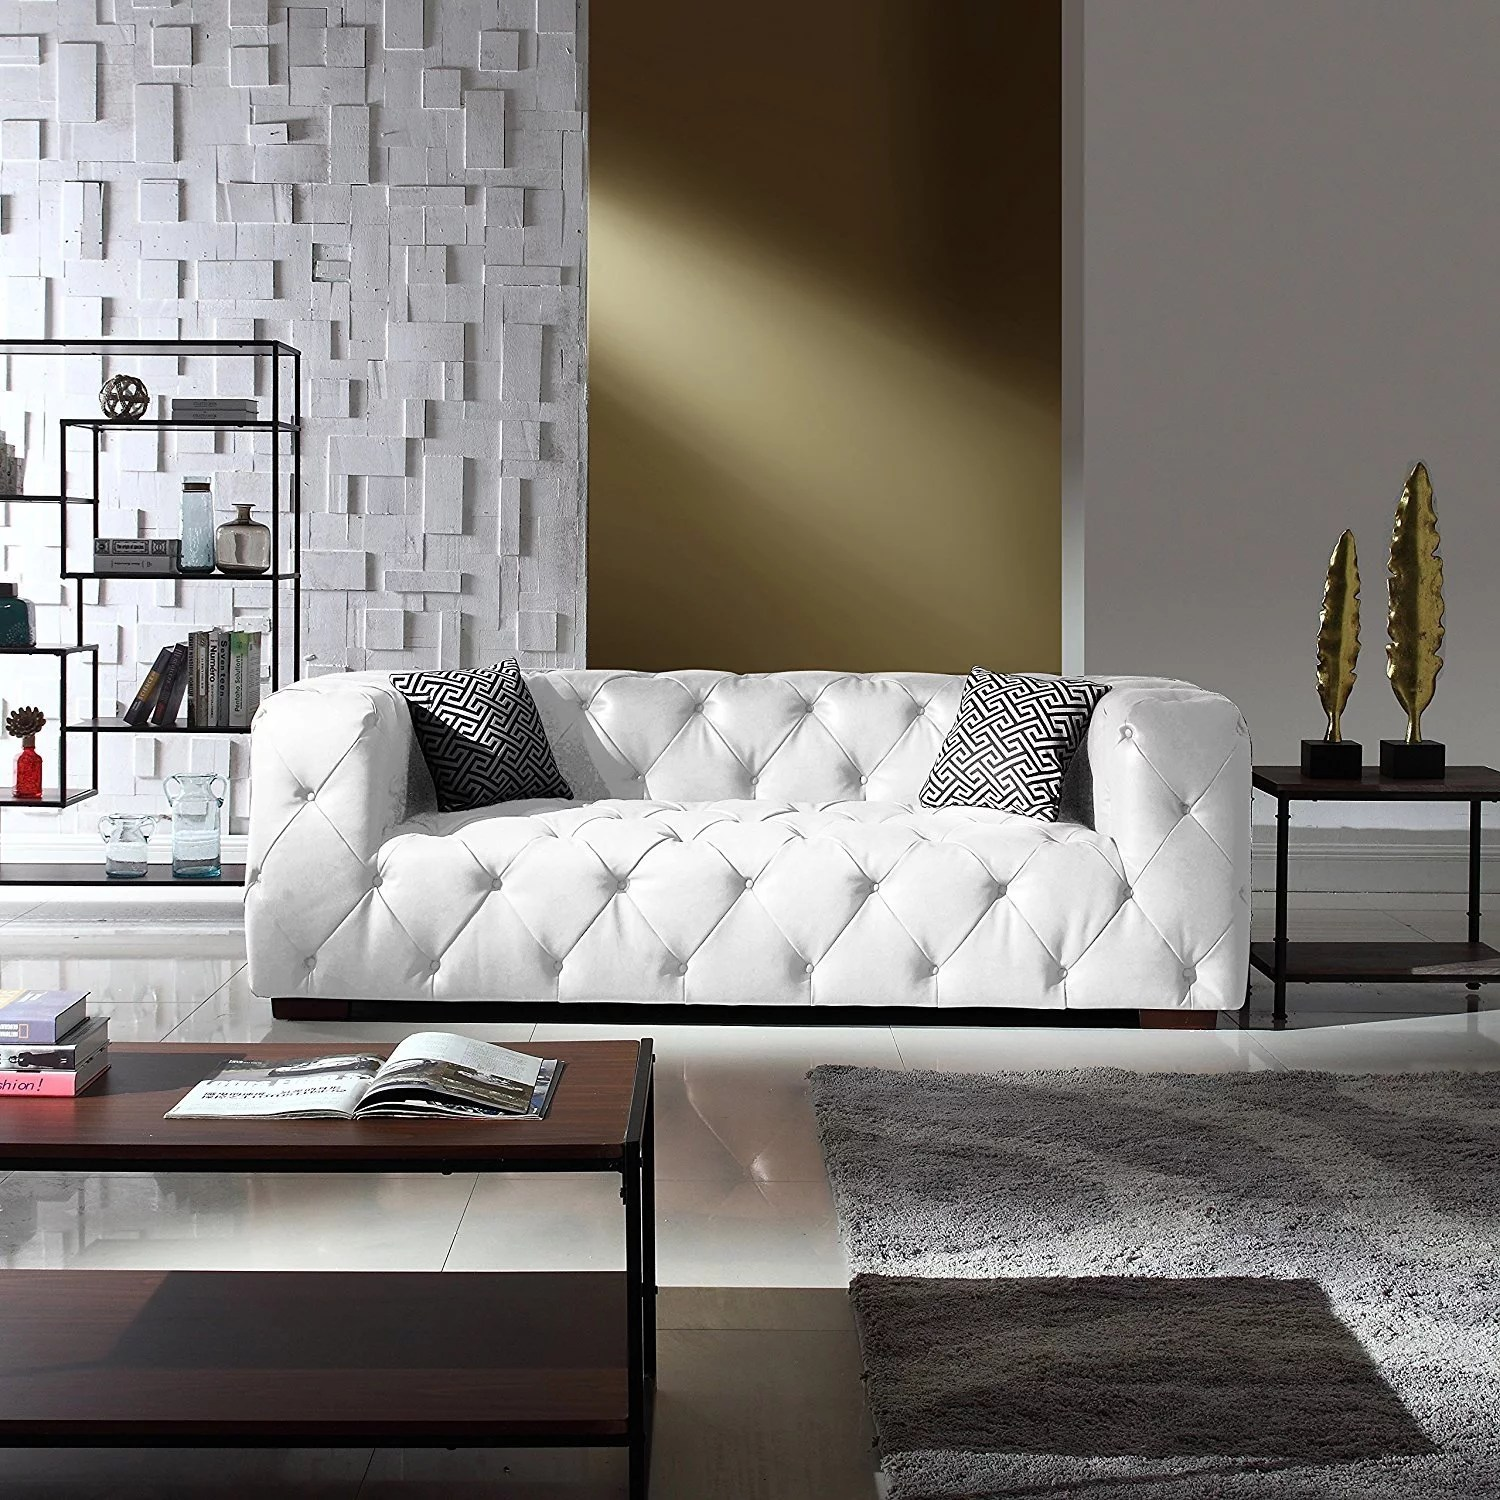 Sofa In Chesterfield Look Large Tufted Real Leather Chesterfield Sofa Classic Living Room Couch White